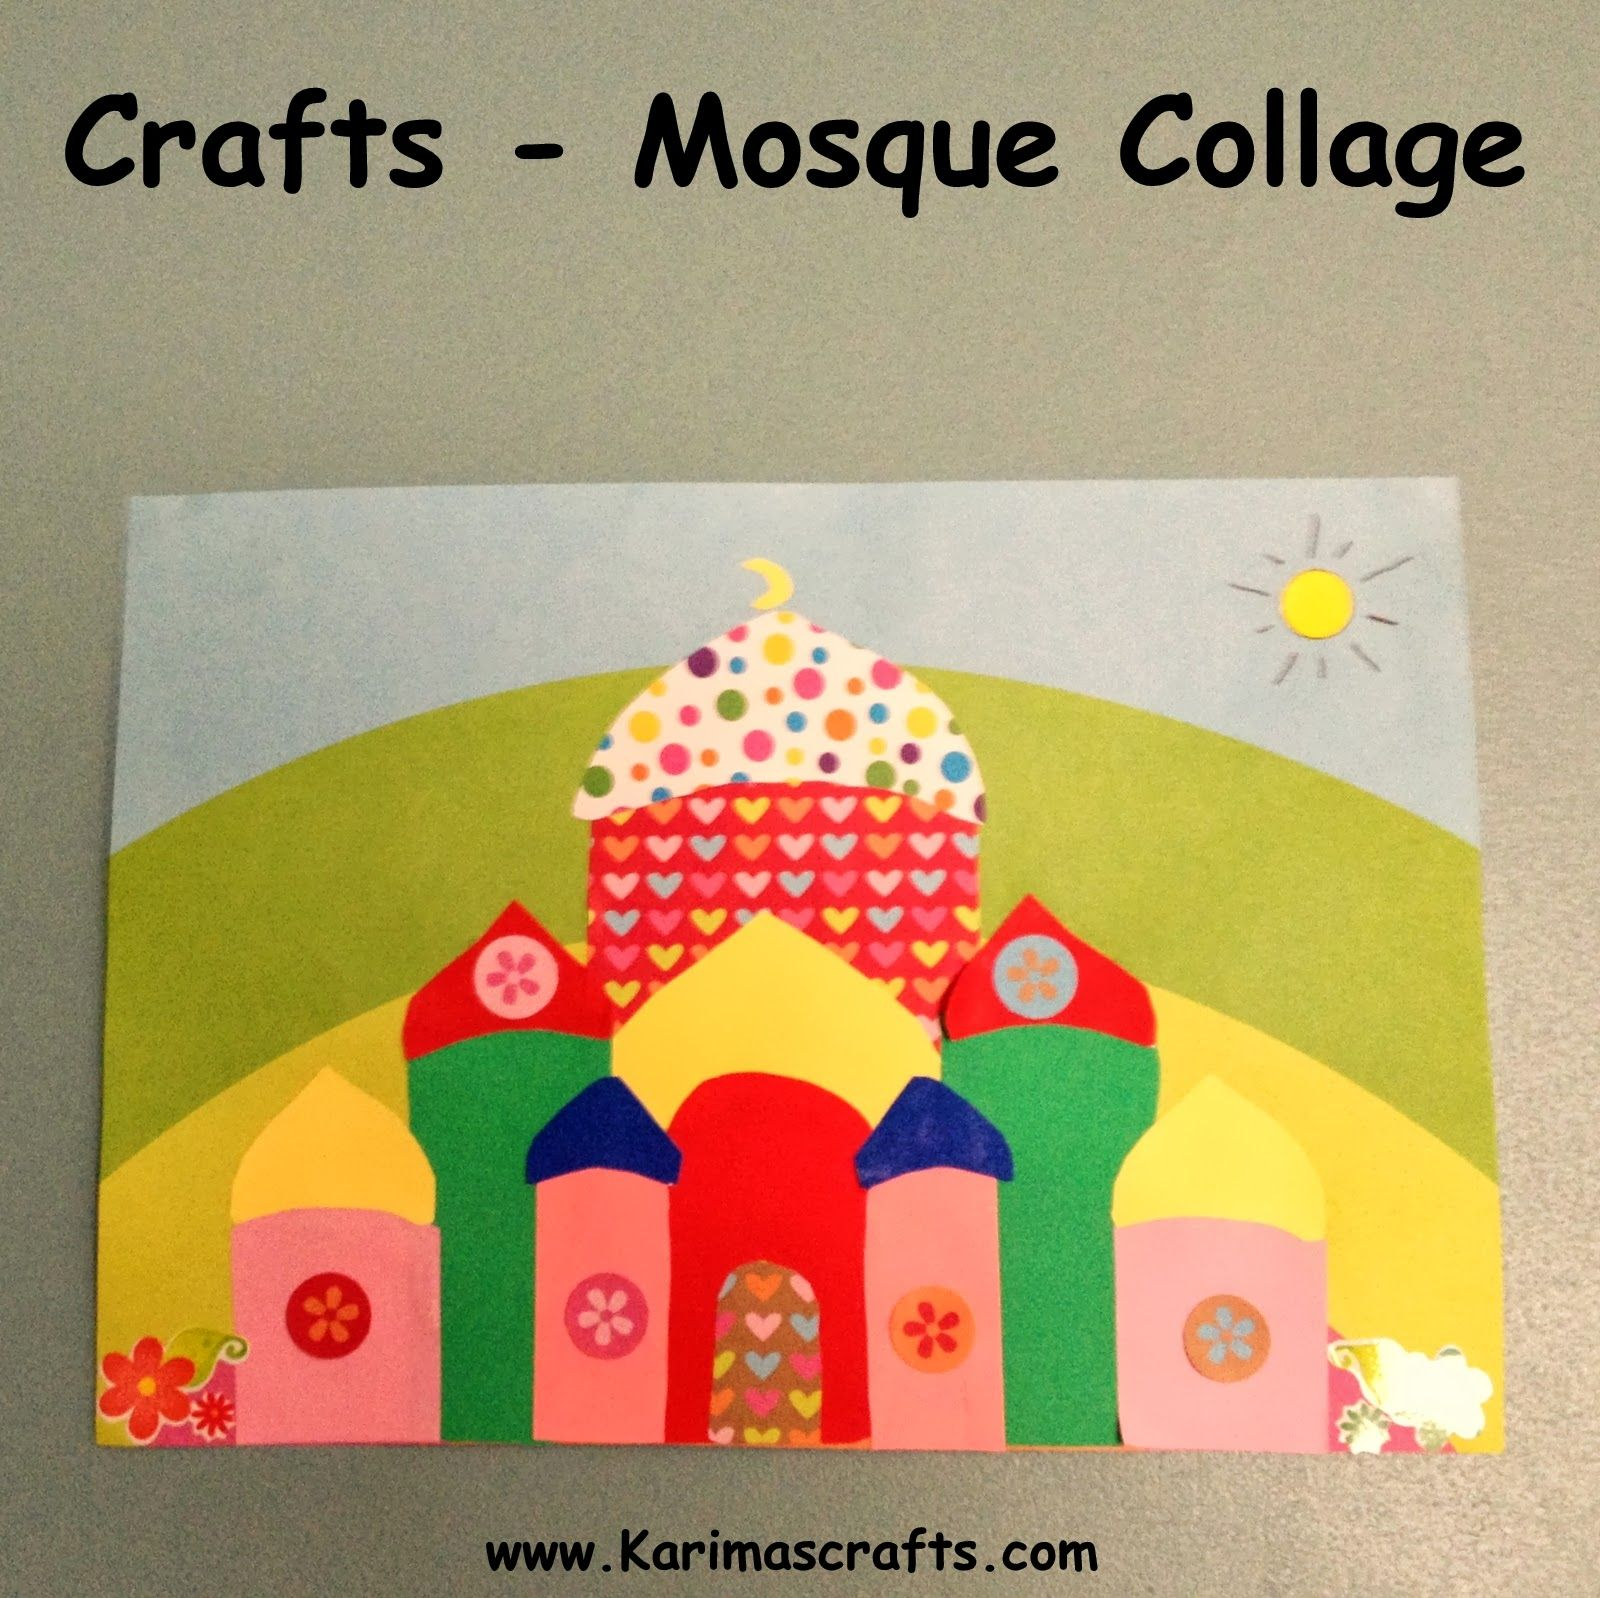 ramadan arts and crafts ideas karima s crafts mosque collage 30 days of ramadan 7087